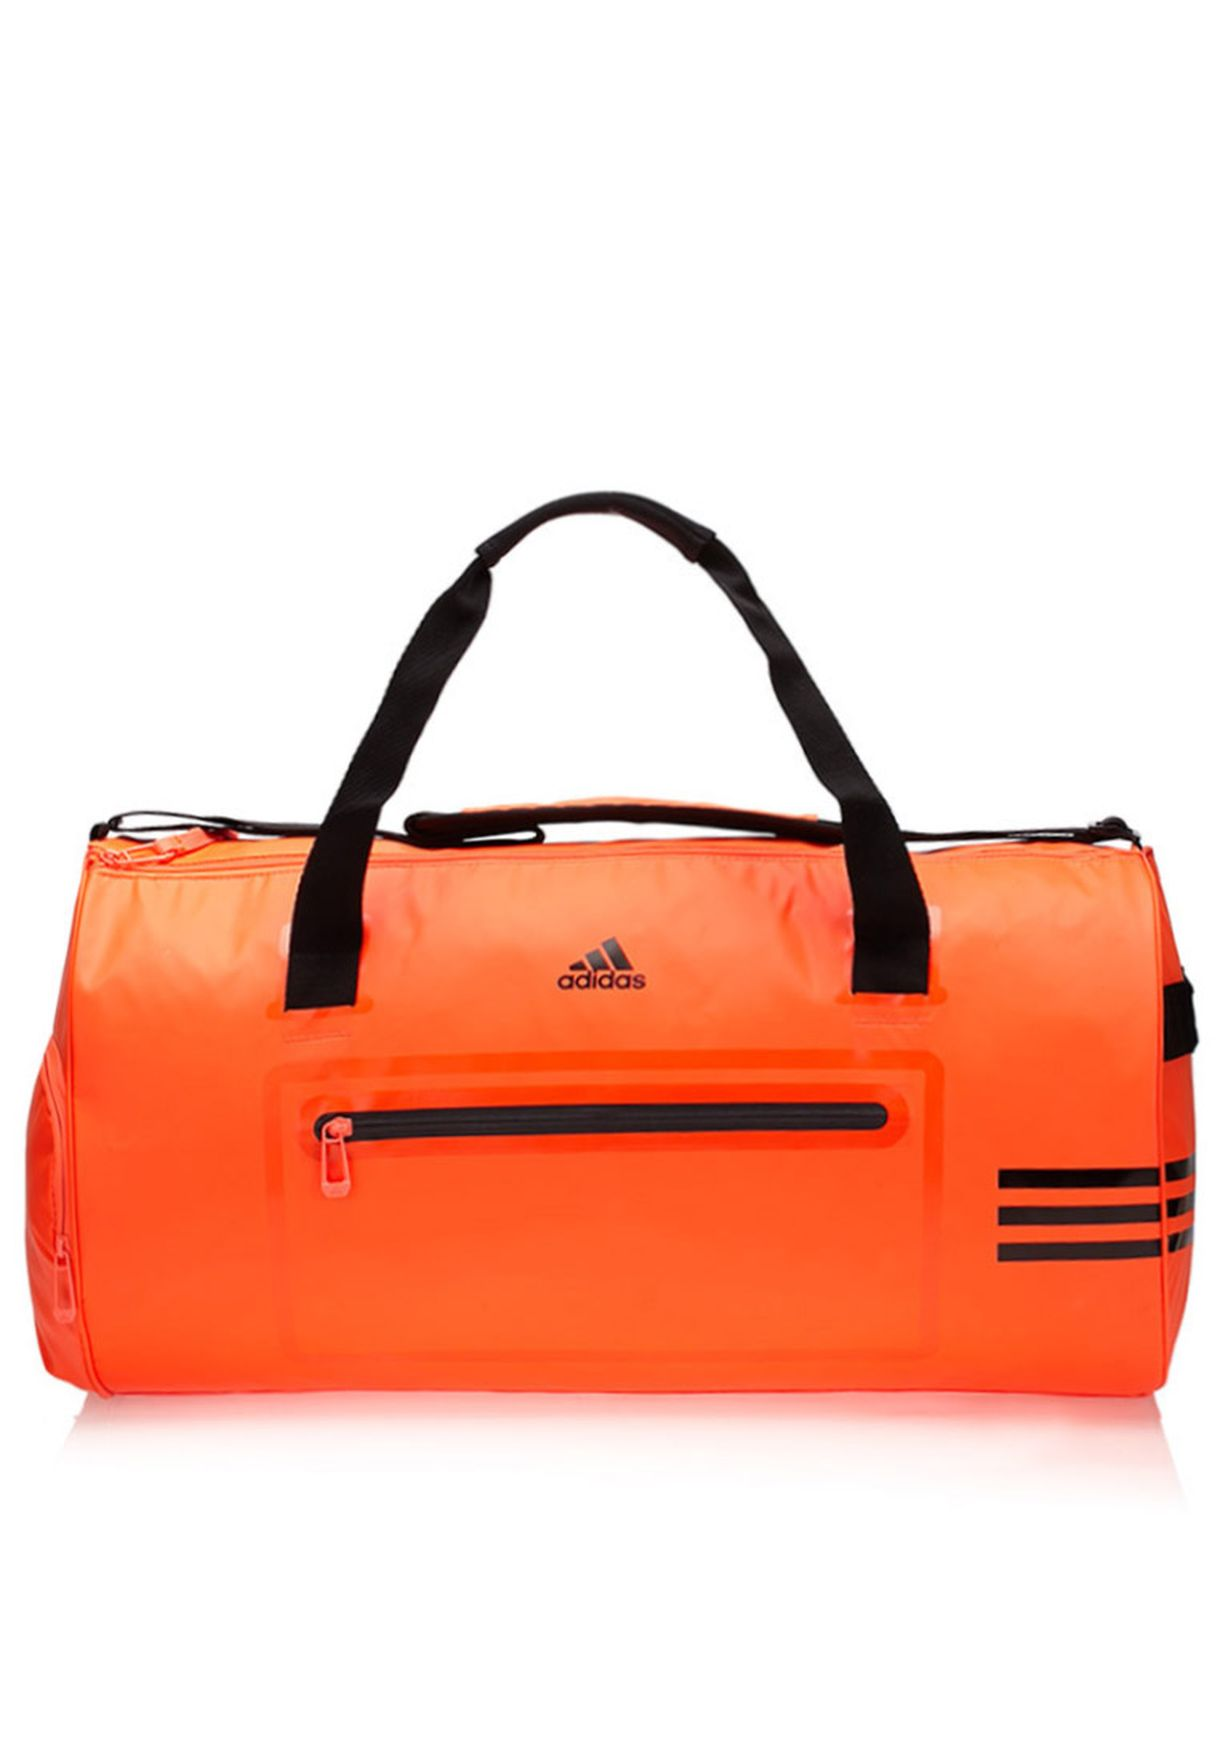 c8e077957c23 Shop adidas orange Medium Climacool Duffel Bag S18196 for Men in UAE ...